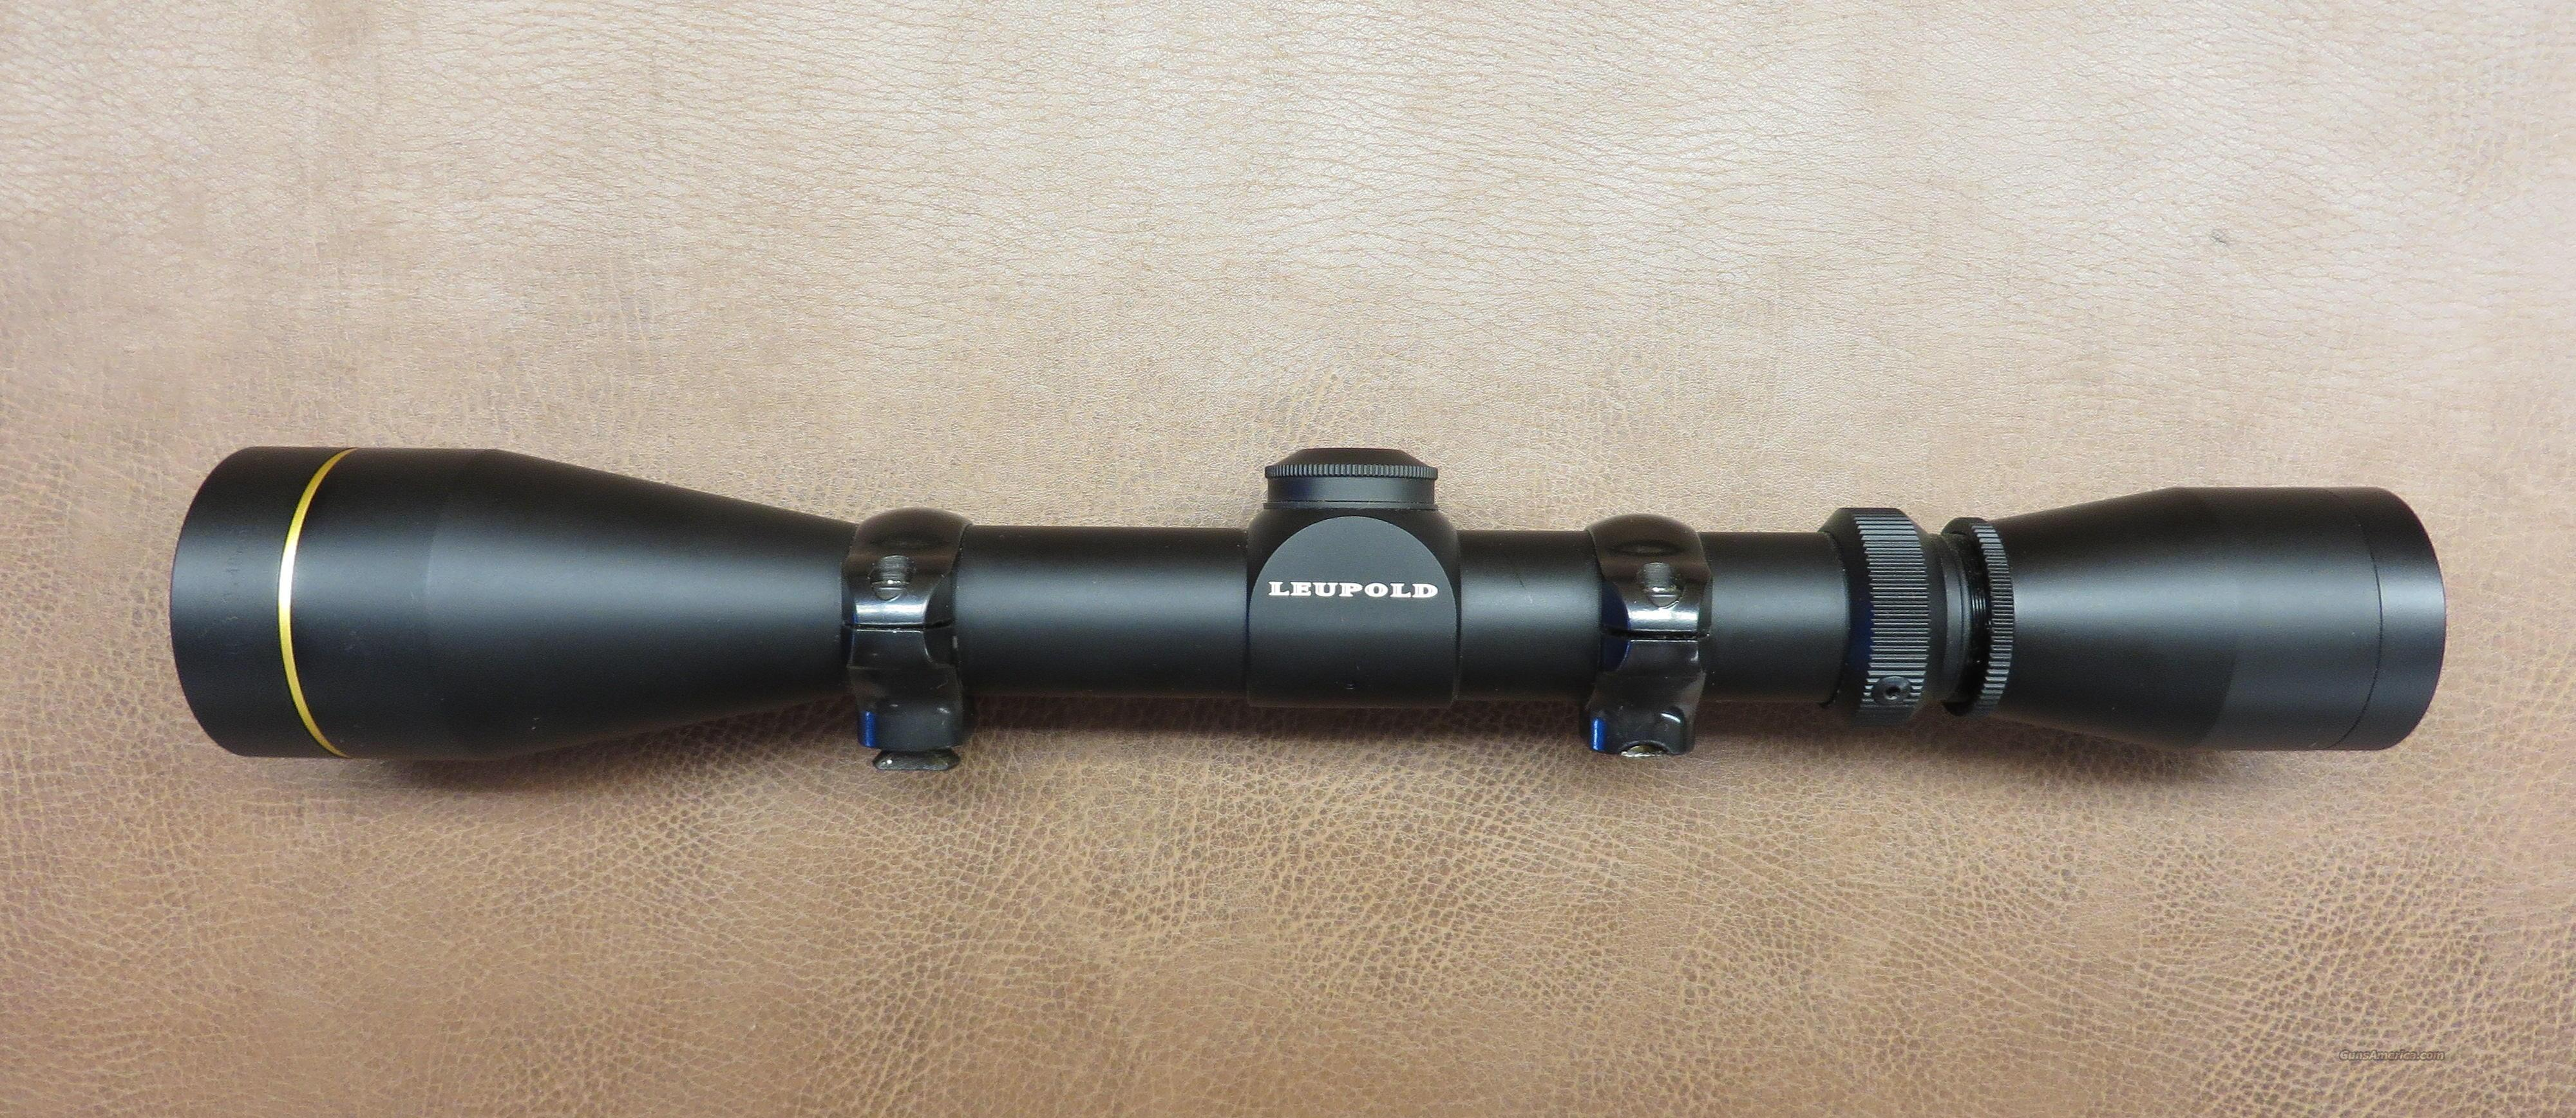 Leupold VX-II 3-9x40MM  Non-Guns > Scopes/Mounts/Rings & Optics > Rifle Scopes > Variable Focal Length